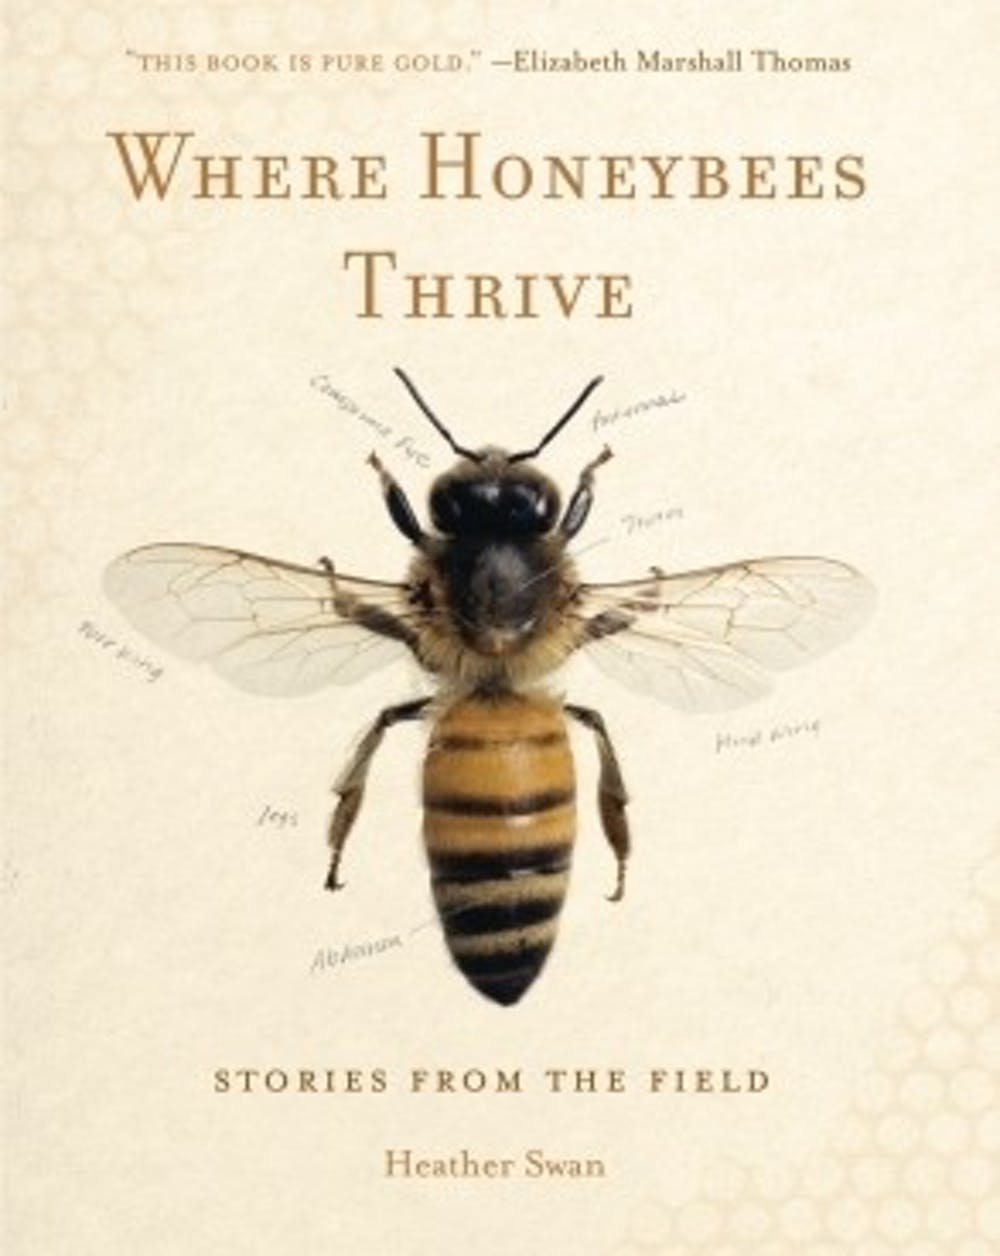 Swan defends the honeybee's legitimacy against public indifference in herpowerful new book.